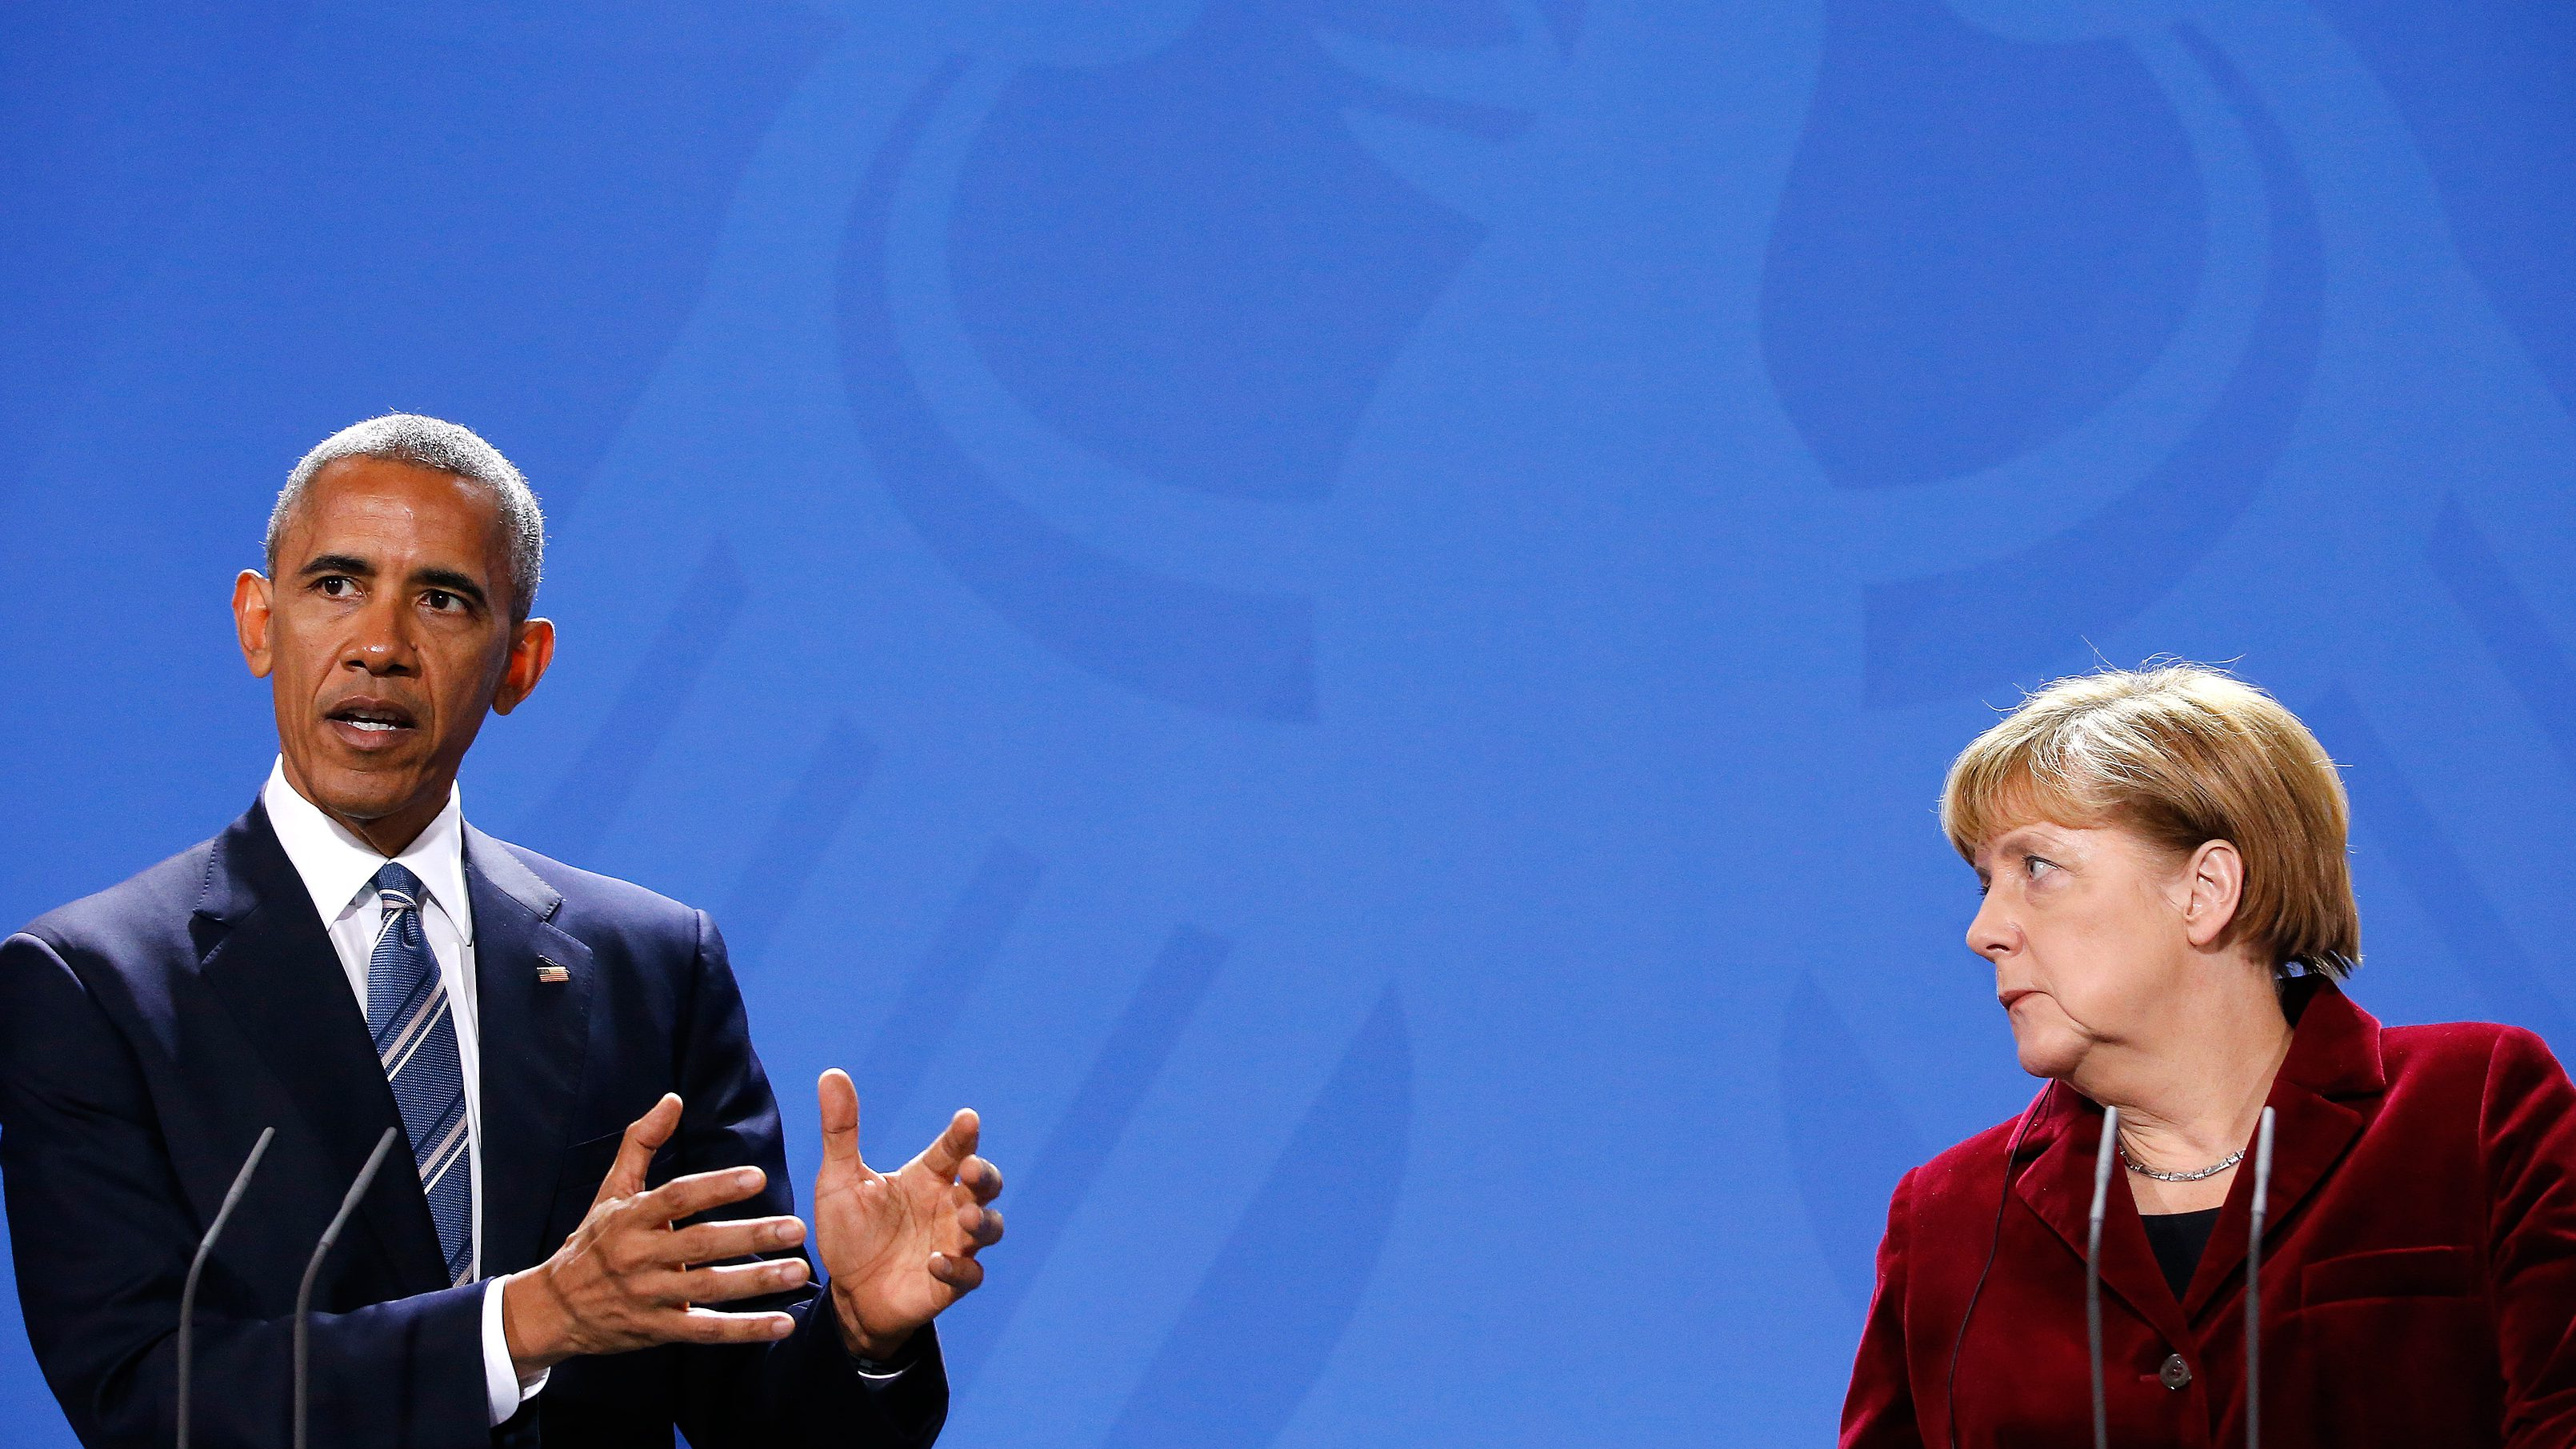 U.S. President Barack Obama speaks during a joint news conference with German Chancellor Angela Merkel in Berlin, Germany, November 17, 2016.     REUTERS/Fabrizio Bensch - RTX2U5J7